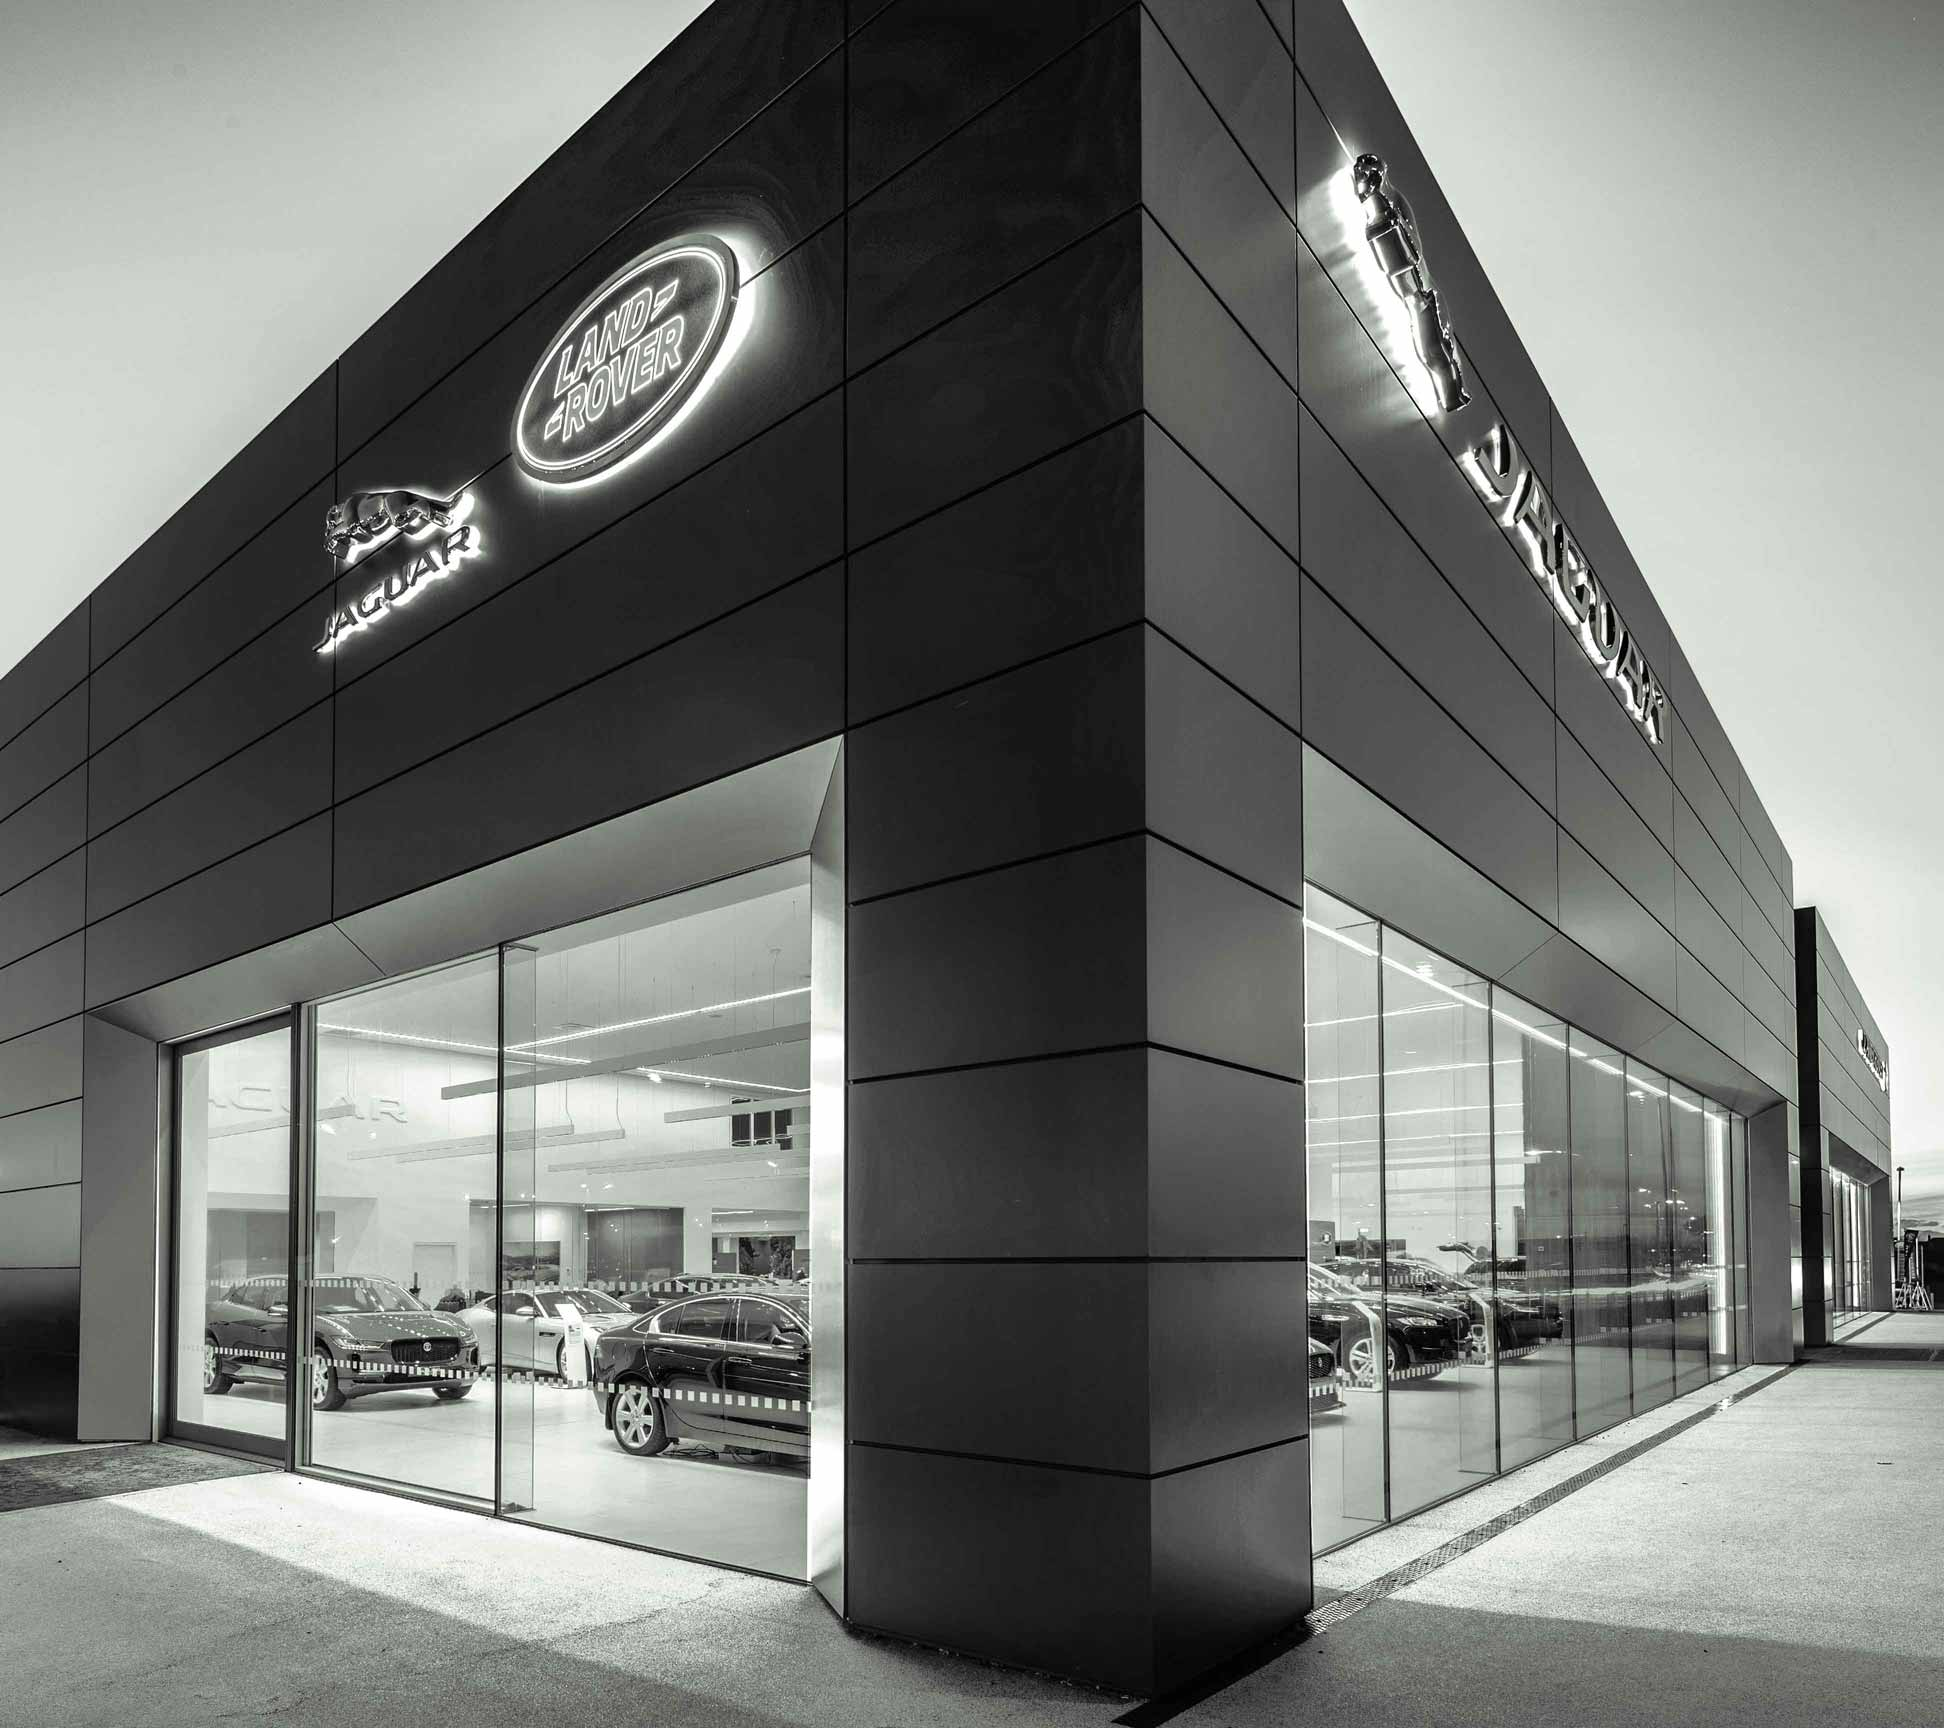 Parks Motor Group Jaguar Land Rover Dealership in Ayr. Photography by James Thompson.